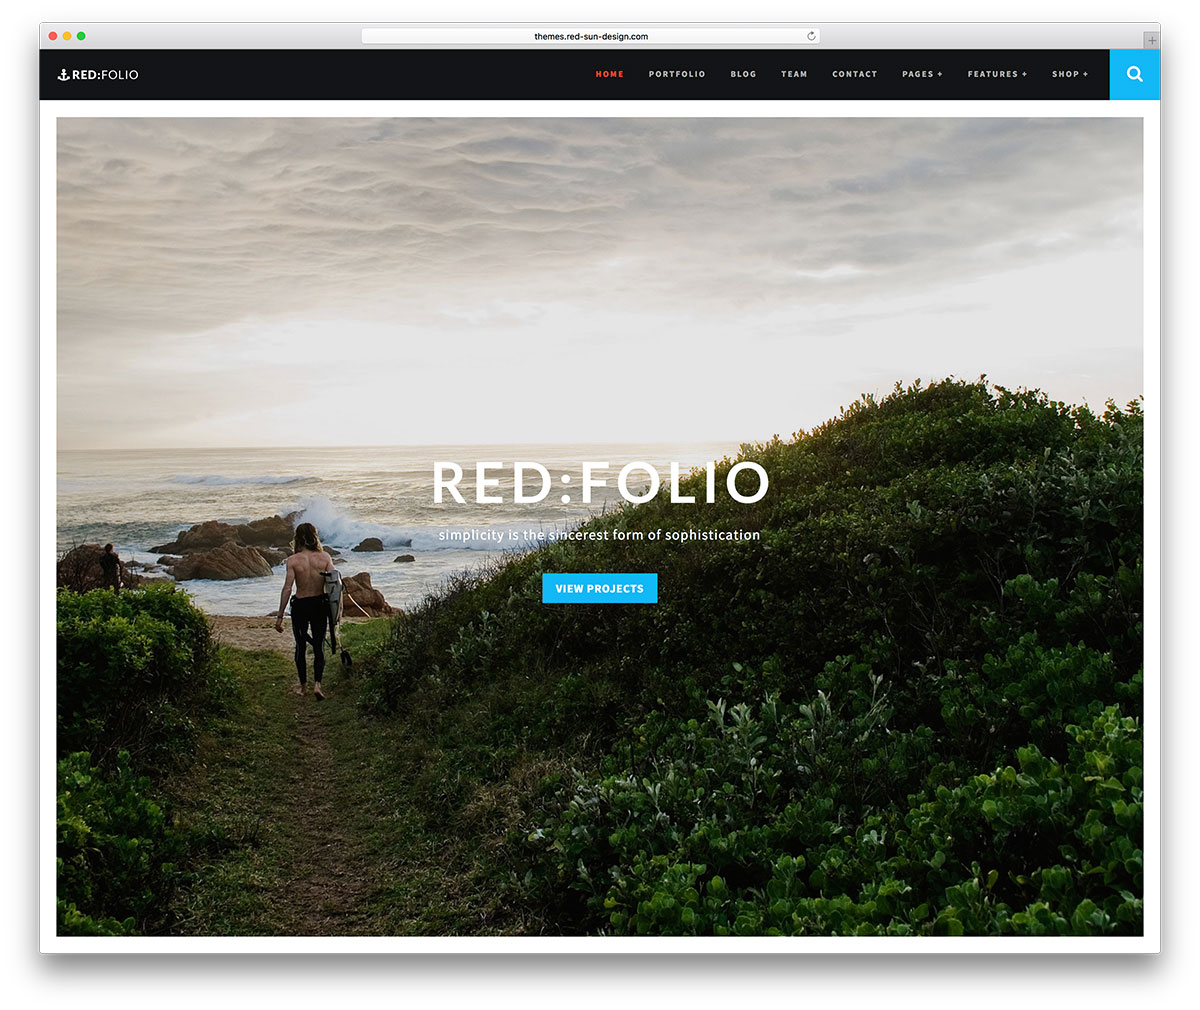 redfolio-photography-portfolio-website-theme